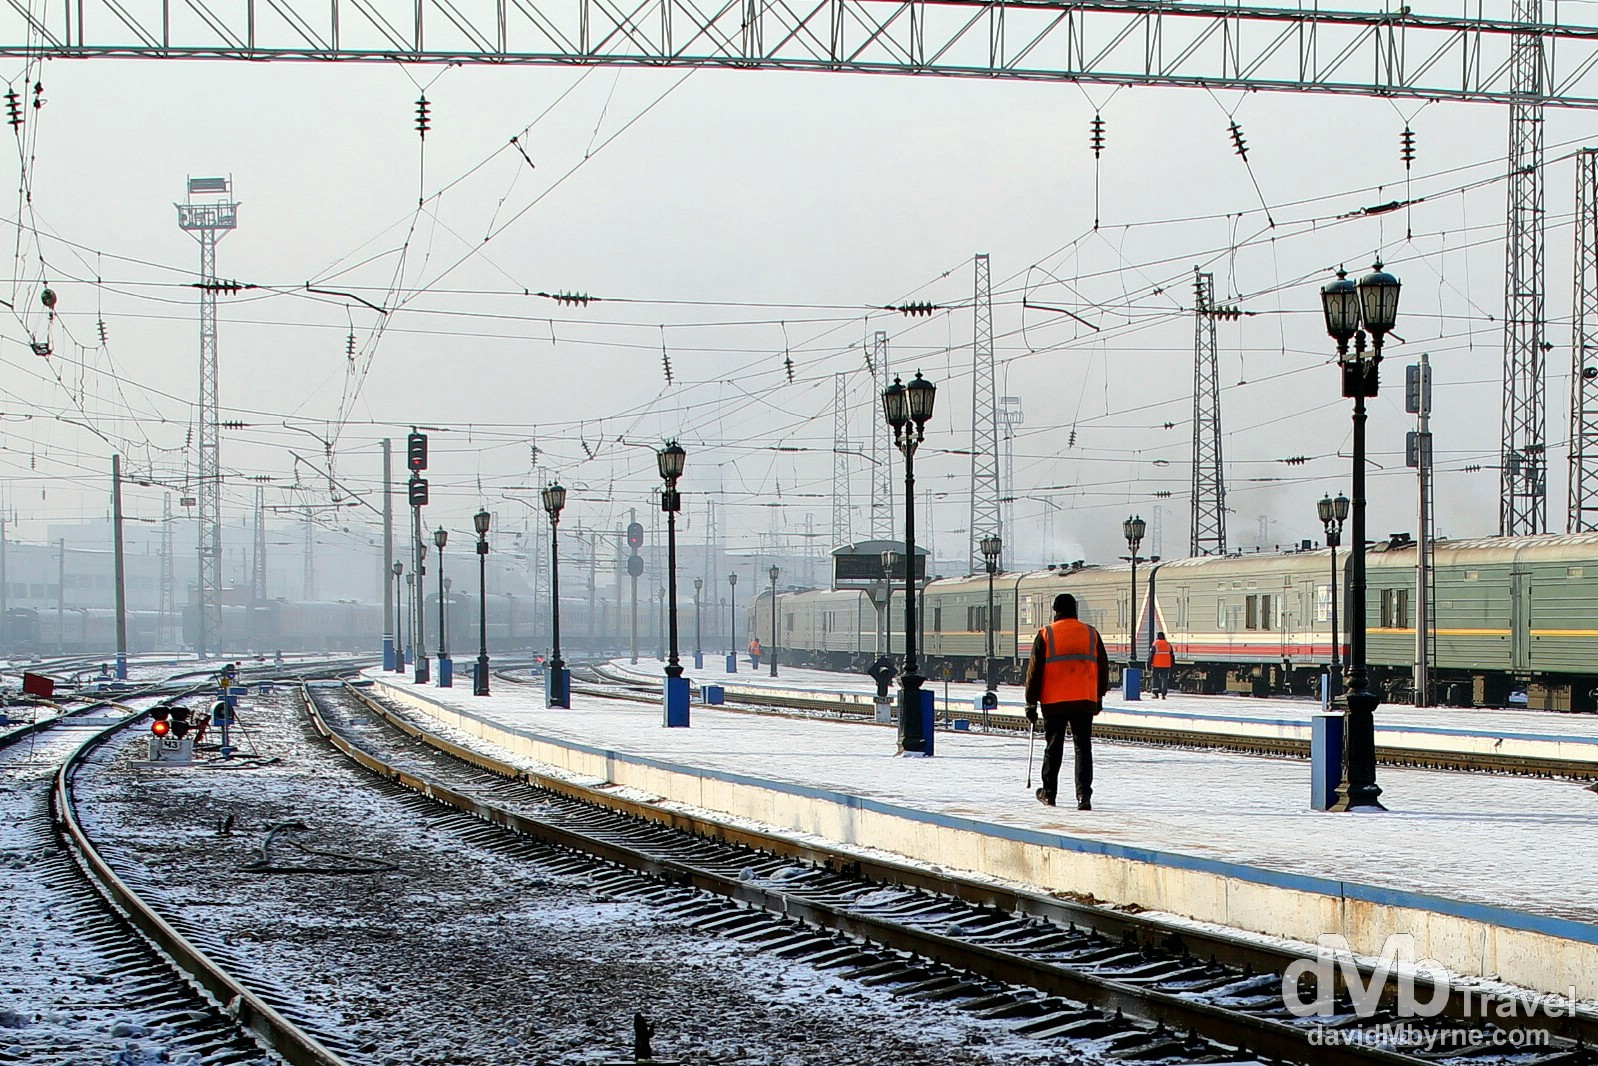 On the platform of Krasnoyarsk train station, Siberian Russia. November 10th 2012.